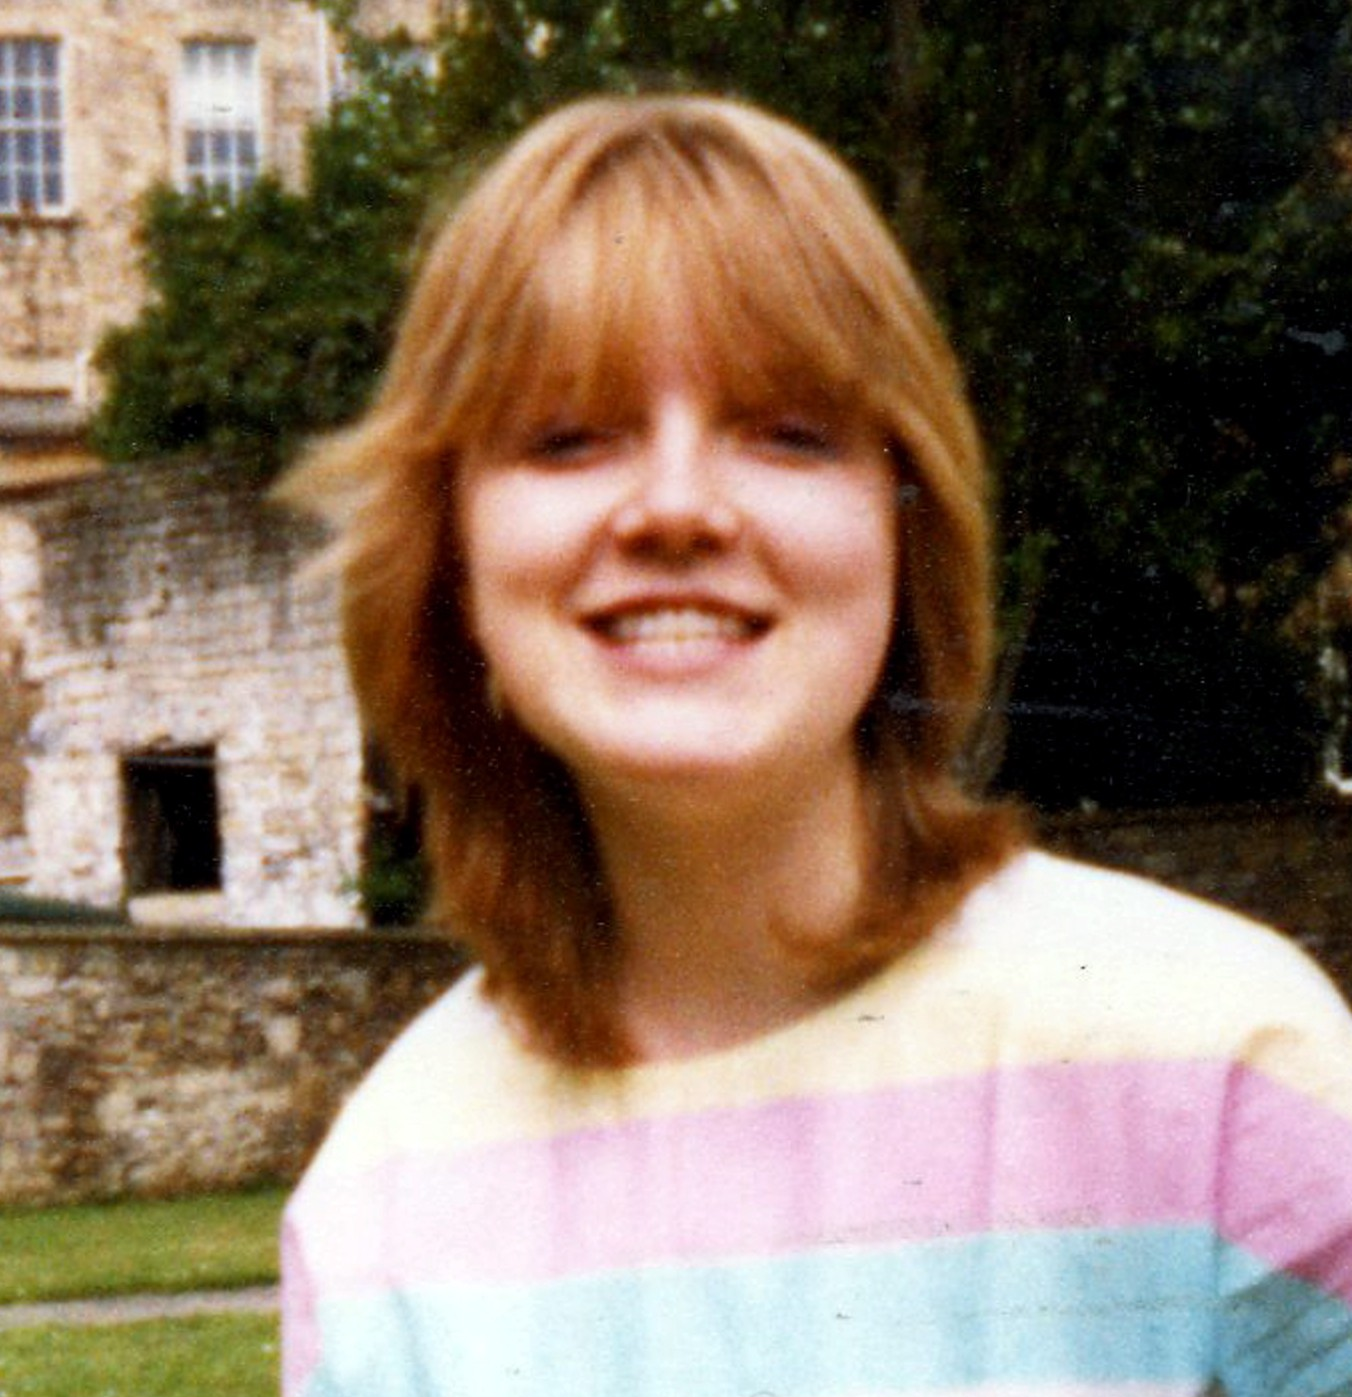 Melanie Road was murdered in Bath 30 years ago and a new witness has now come forward